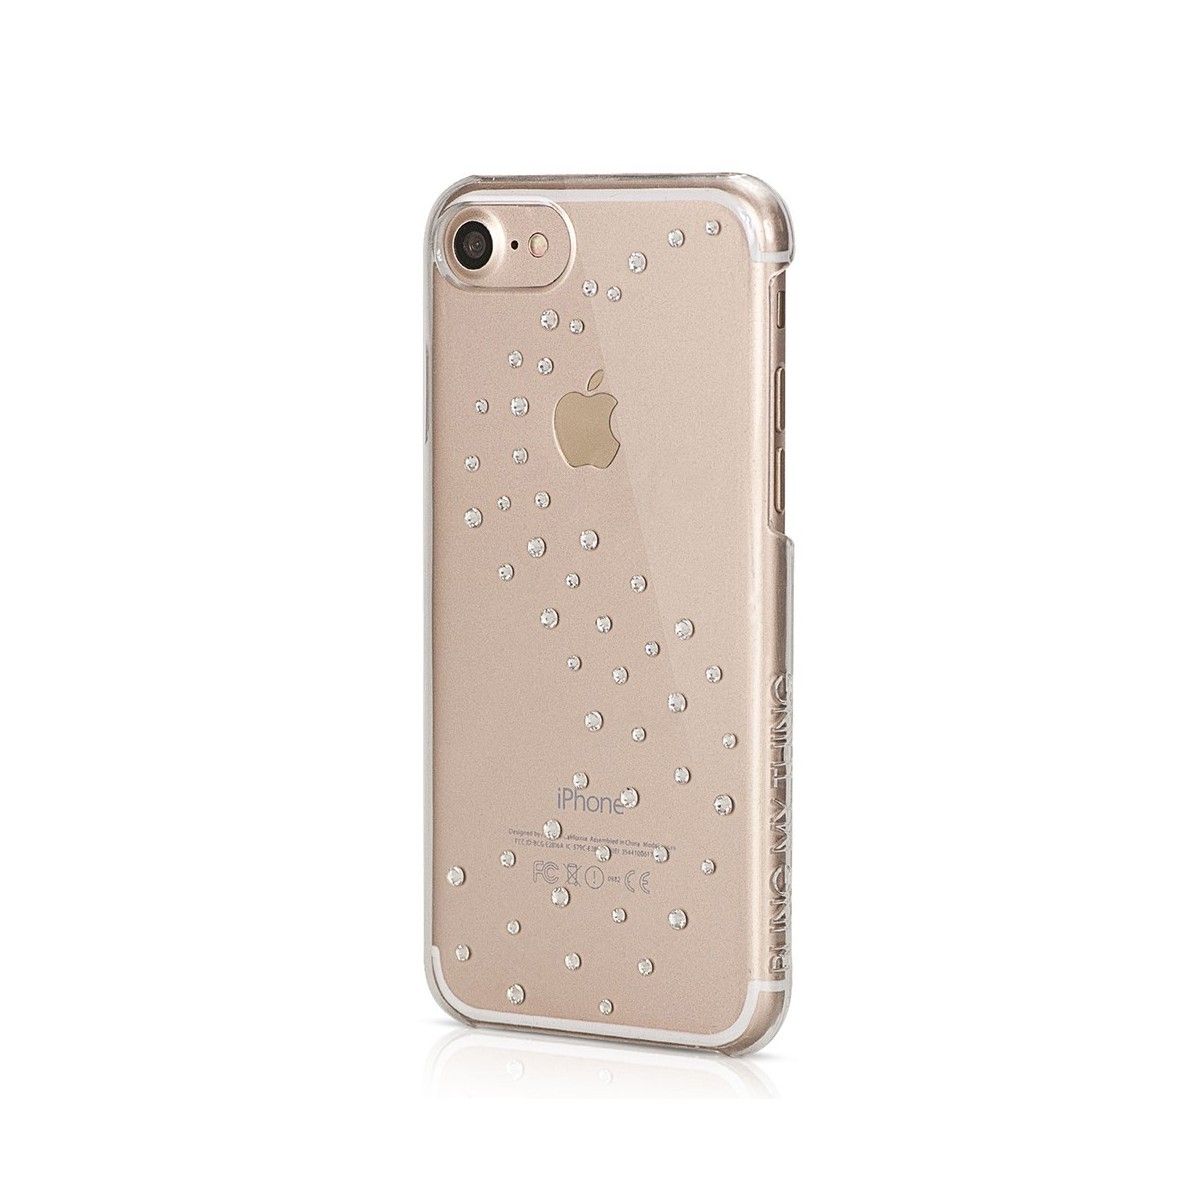 Coque iPhone 7 Milky Way Pure Brillance Strass Cristal Swarovski - Bling My Thing